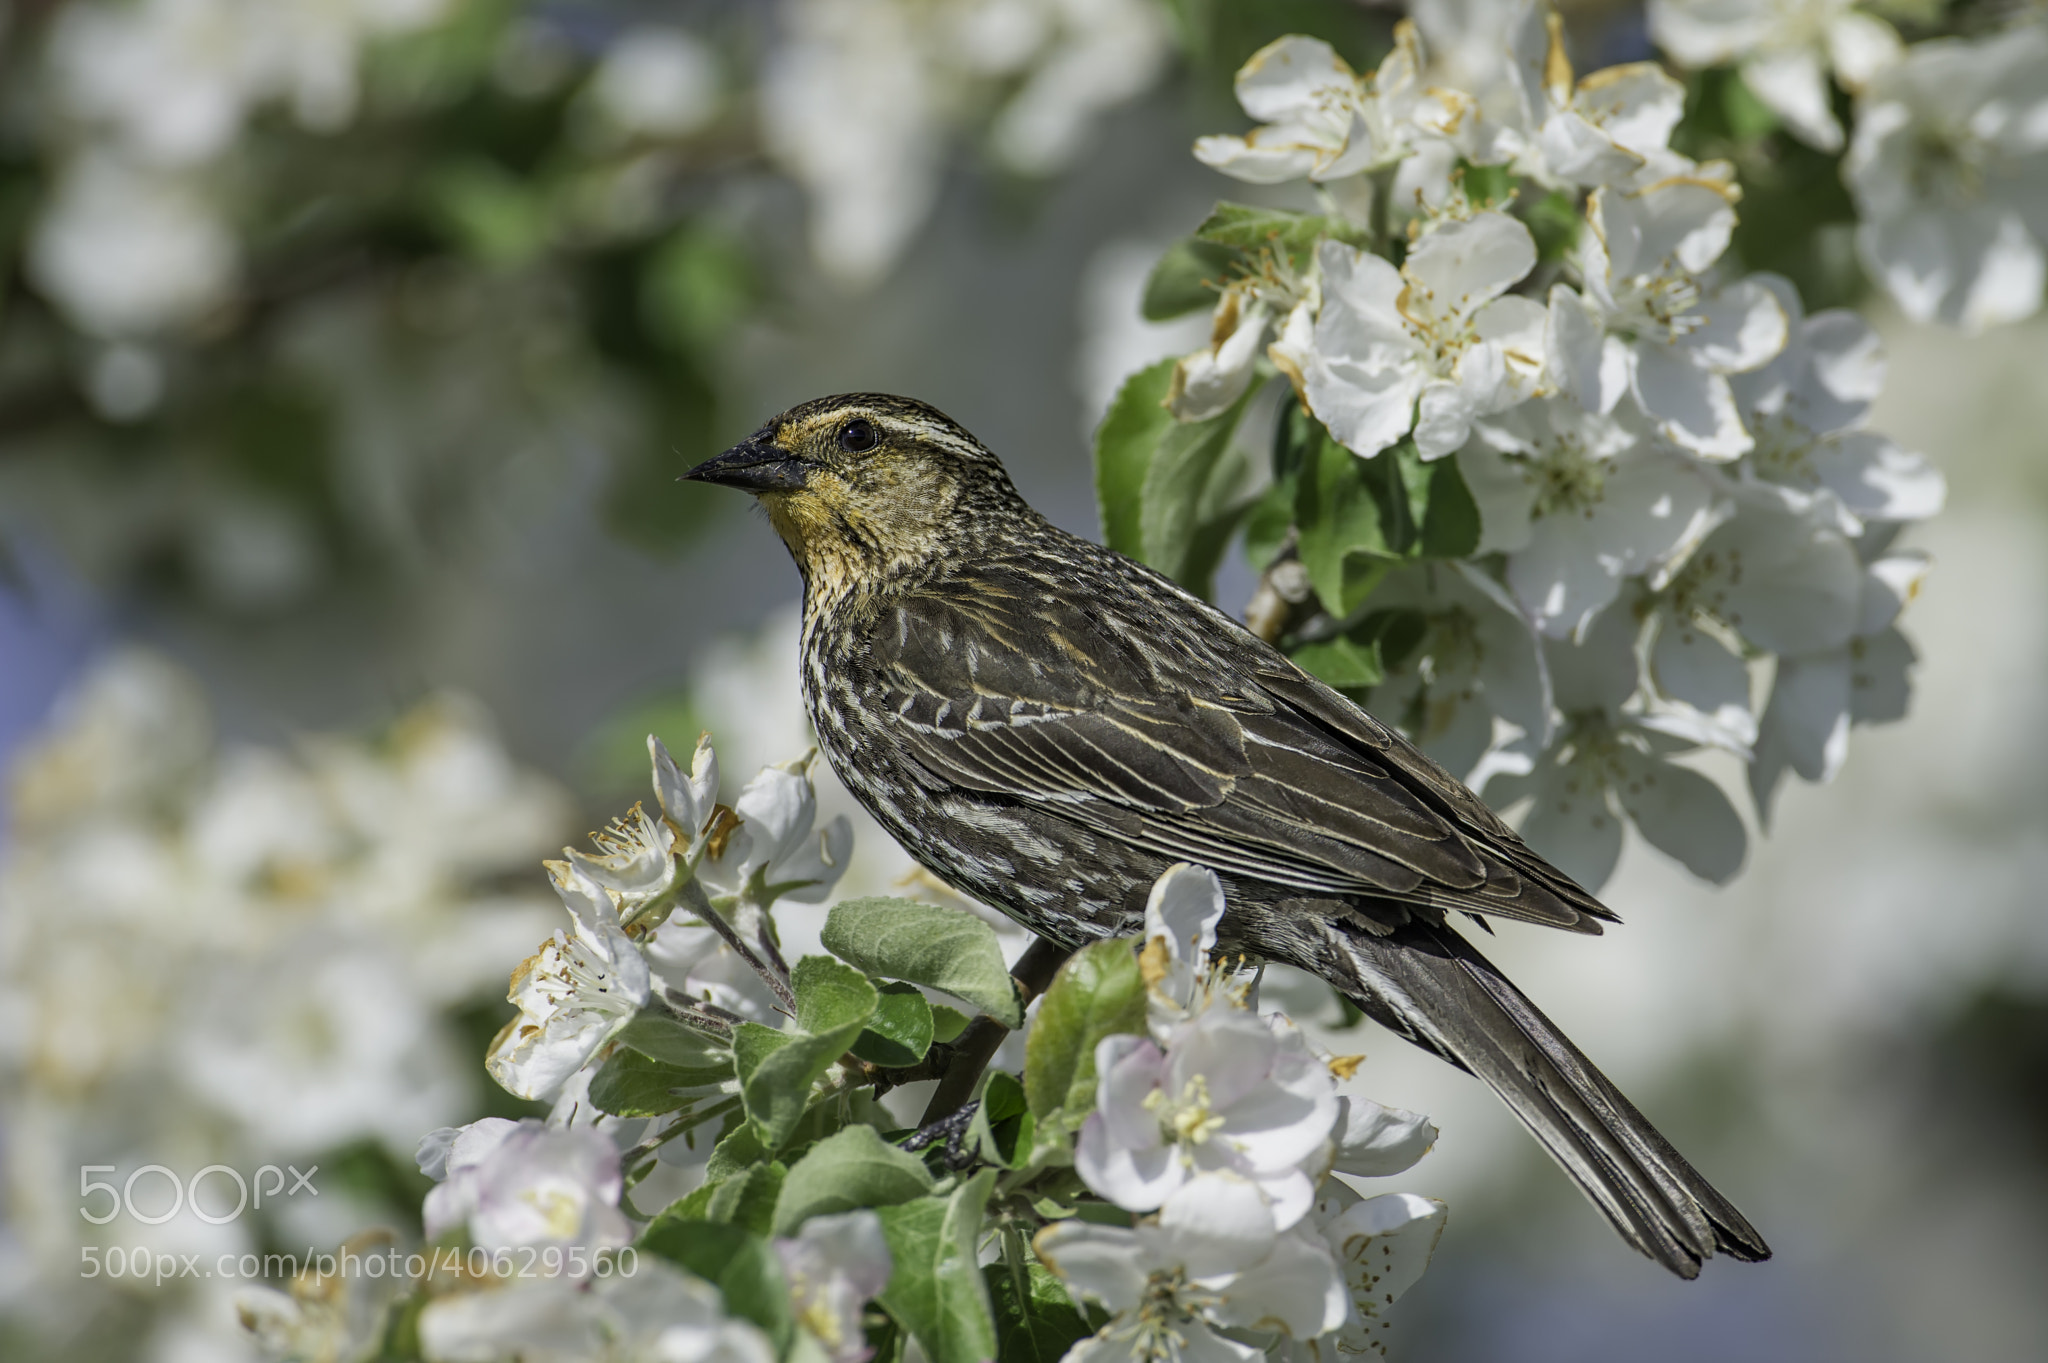 Photograph On a flowering perch by Daniel Parent on 500px